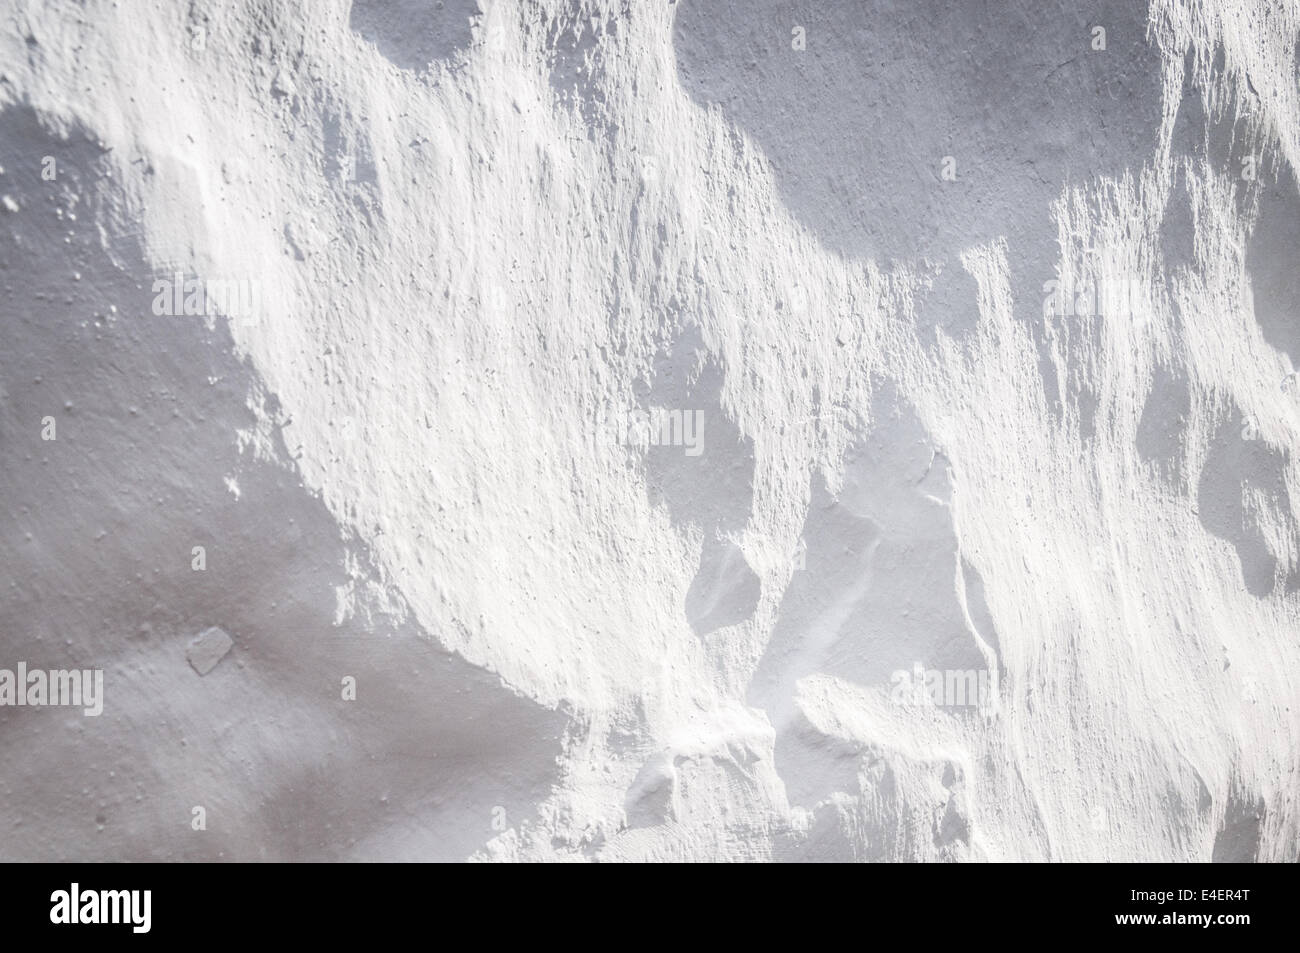 Textured white wall background detail - Stock Image